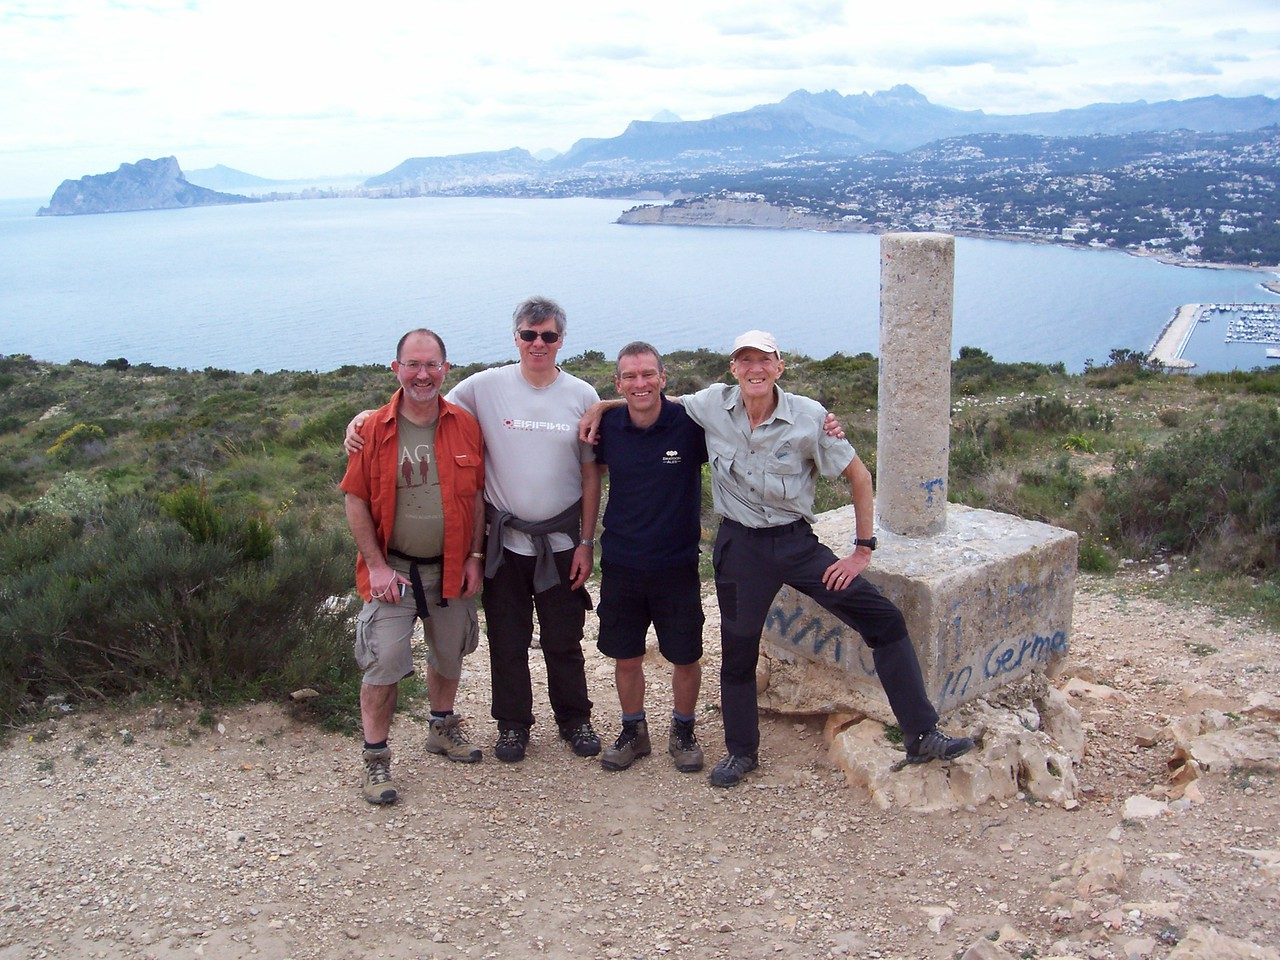 Completion of the Cala Moraig to El portet hike